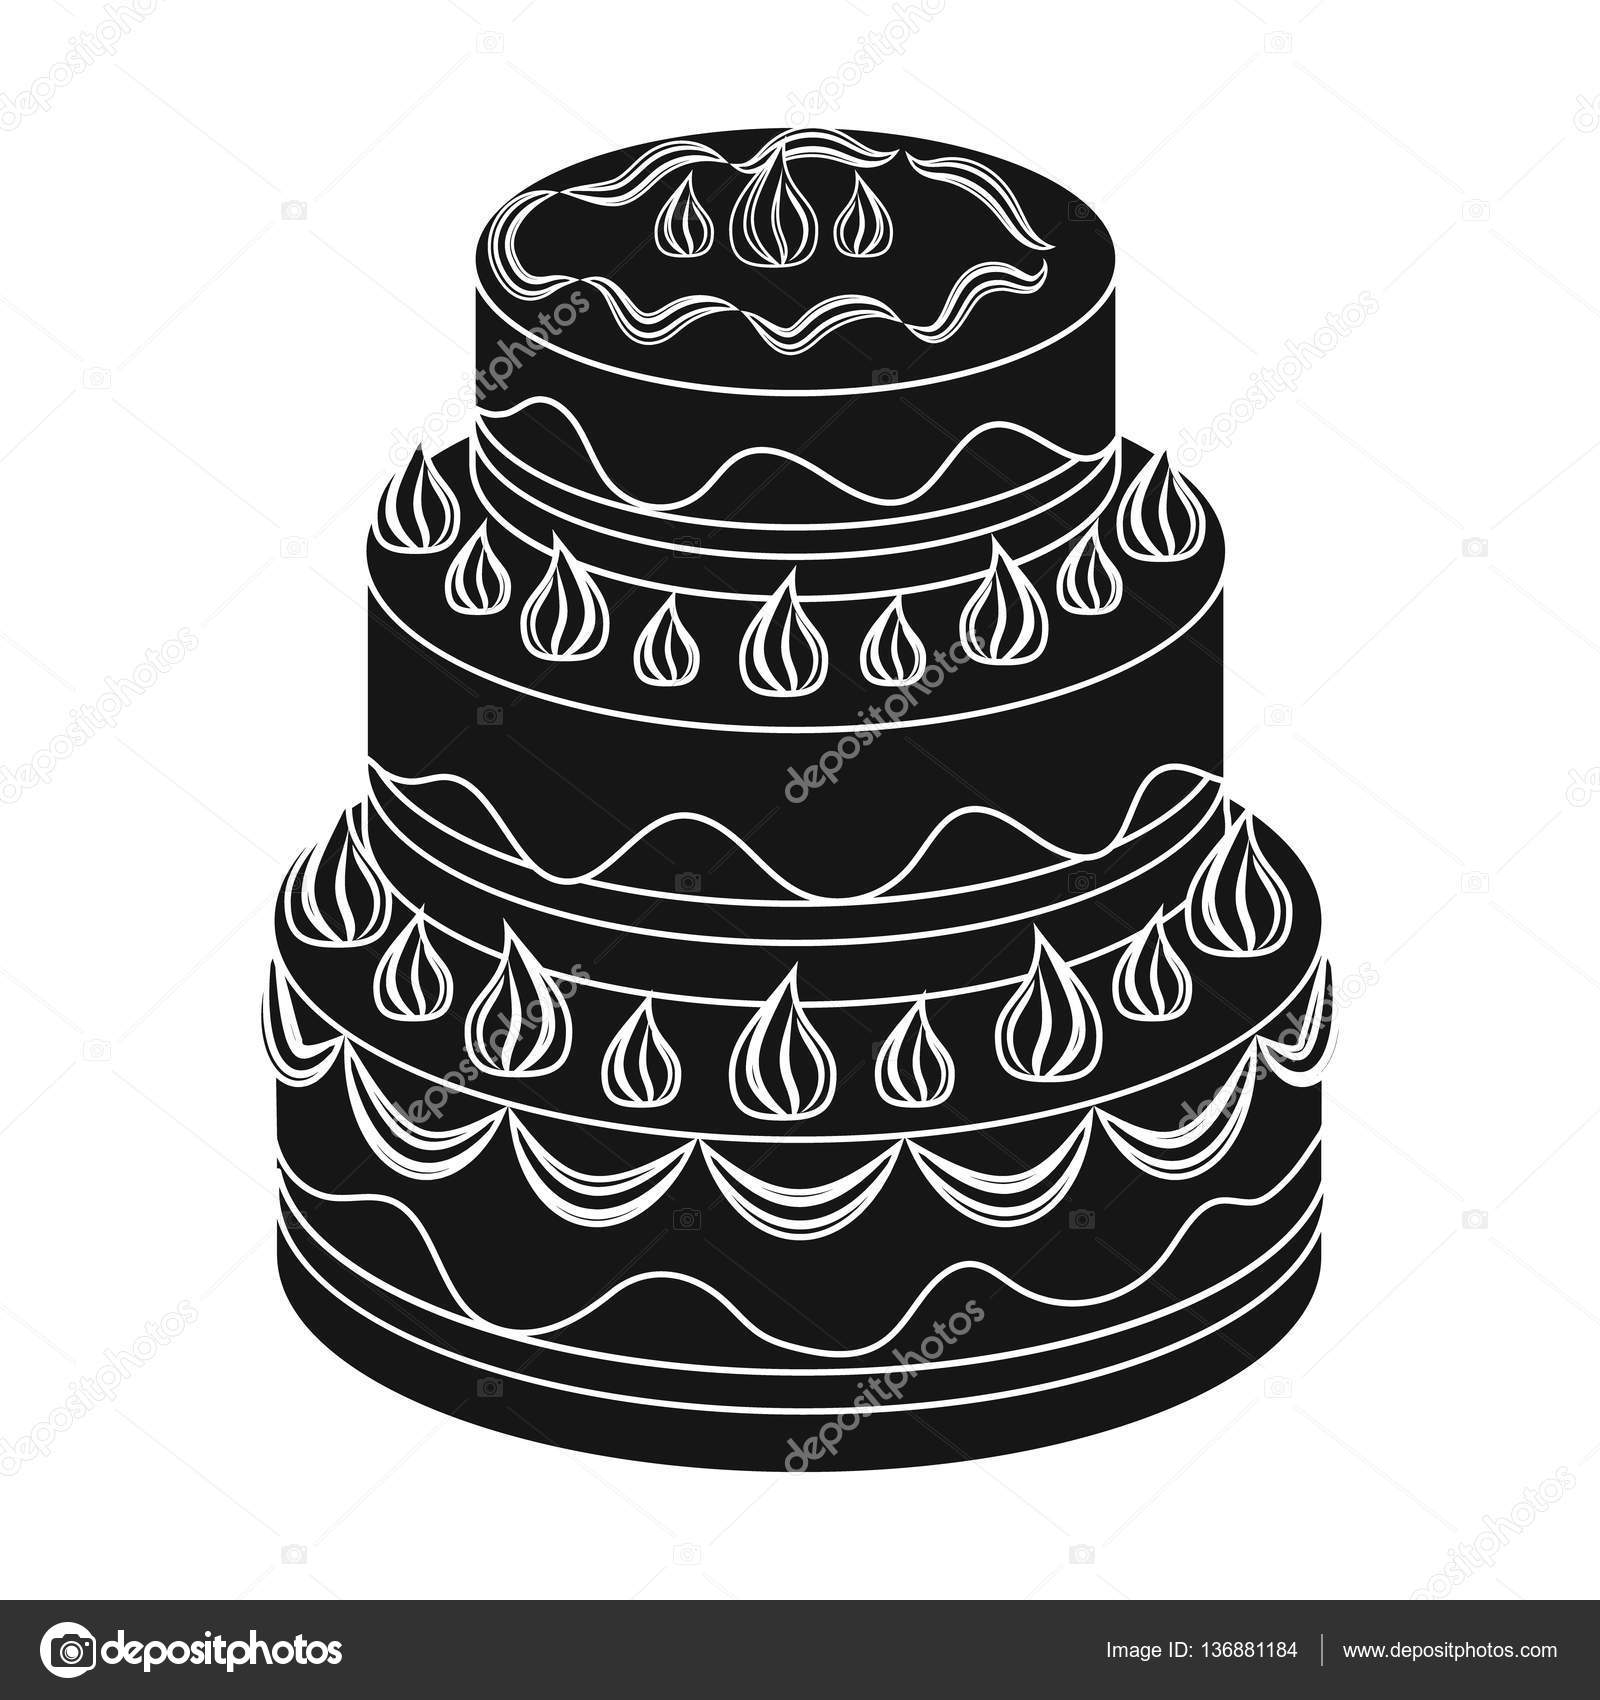 Red threeply cake icon in black style isolated on white background